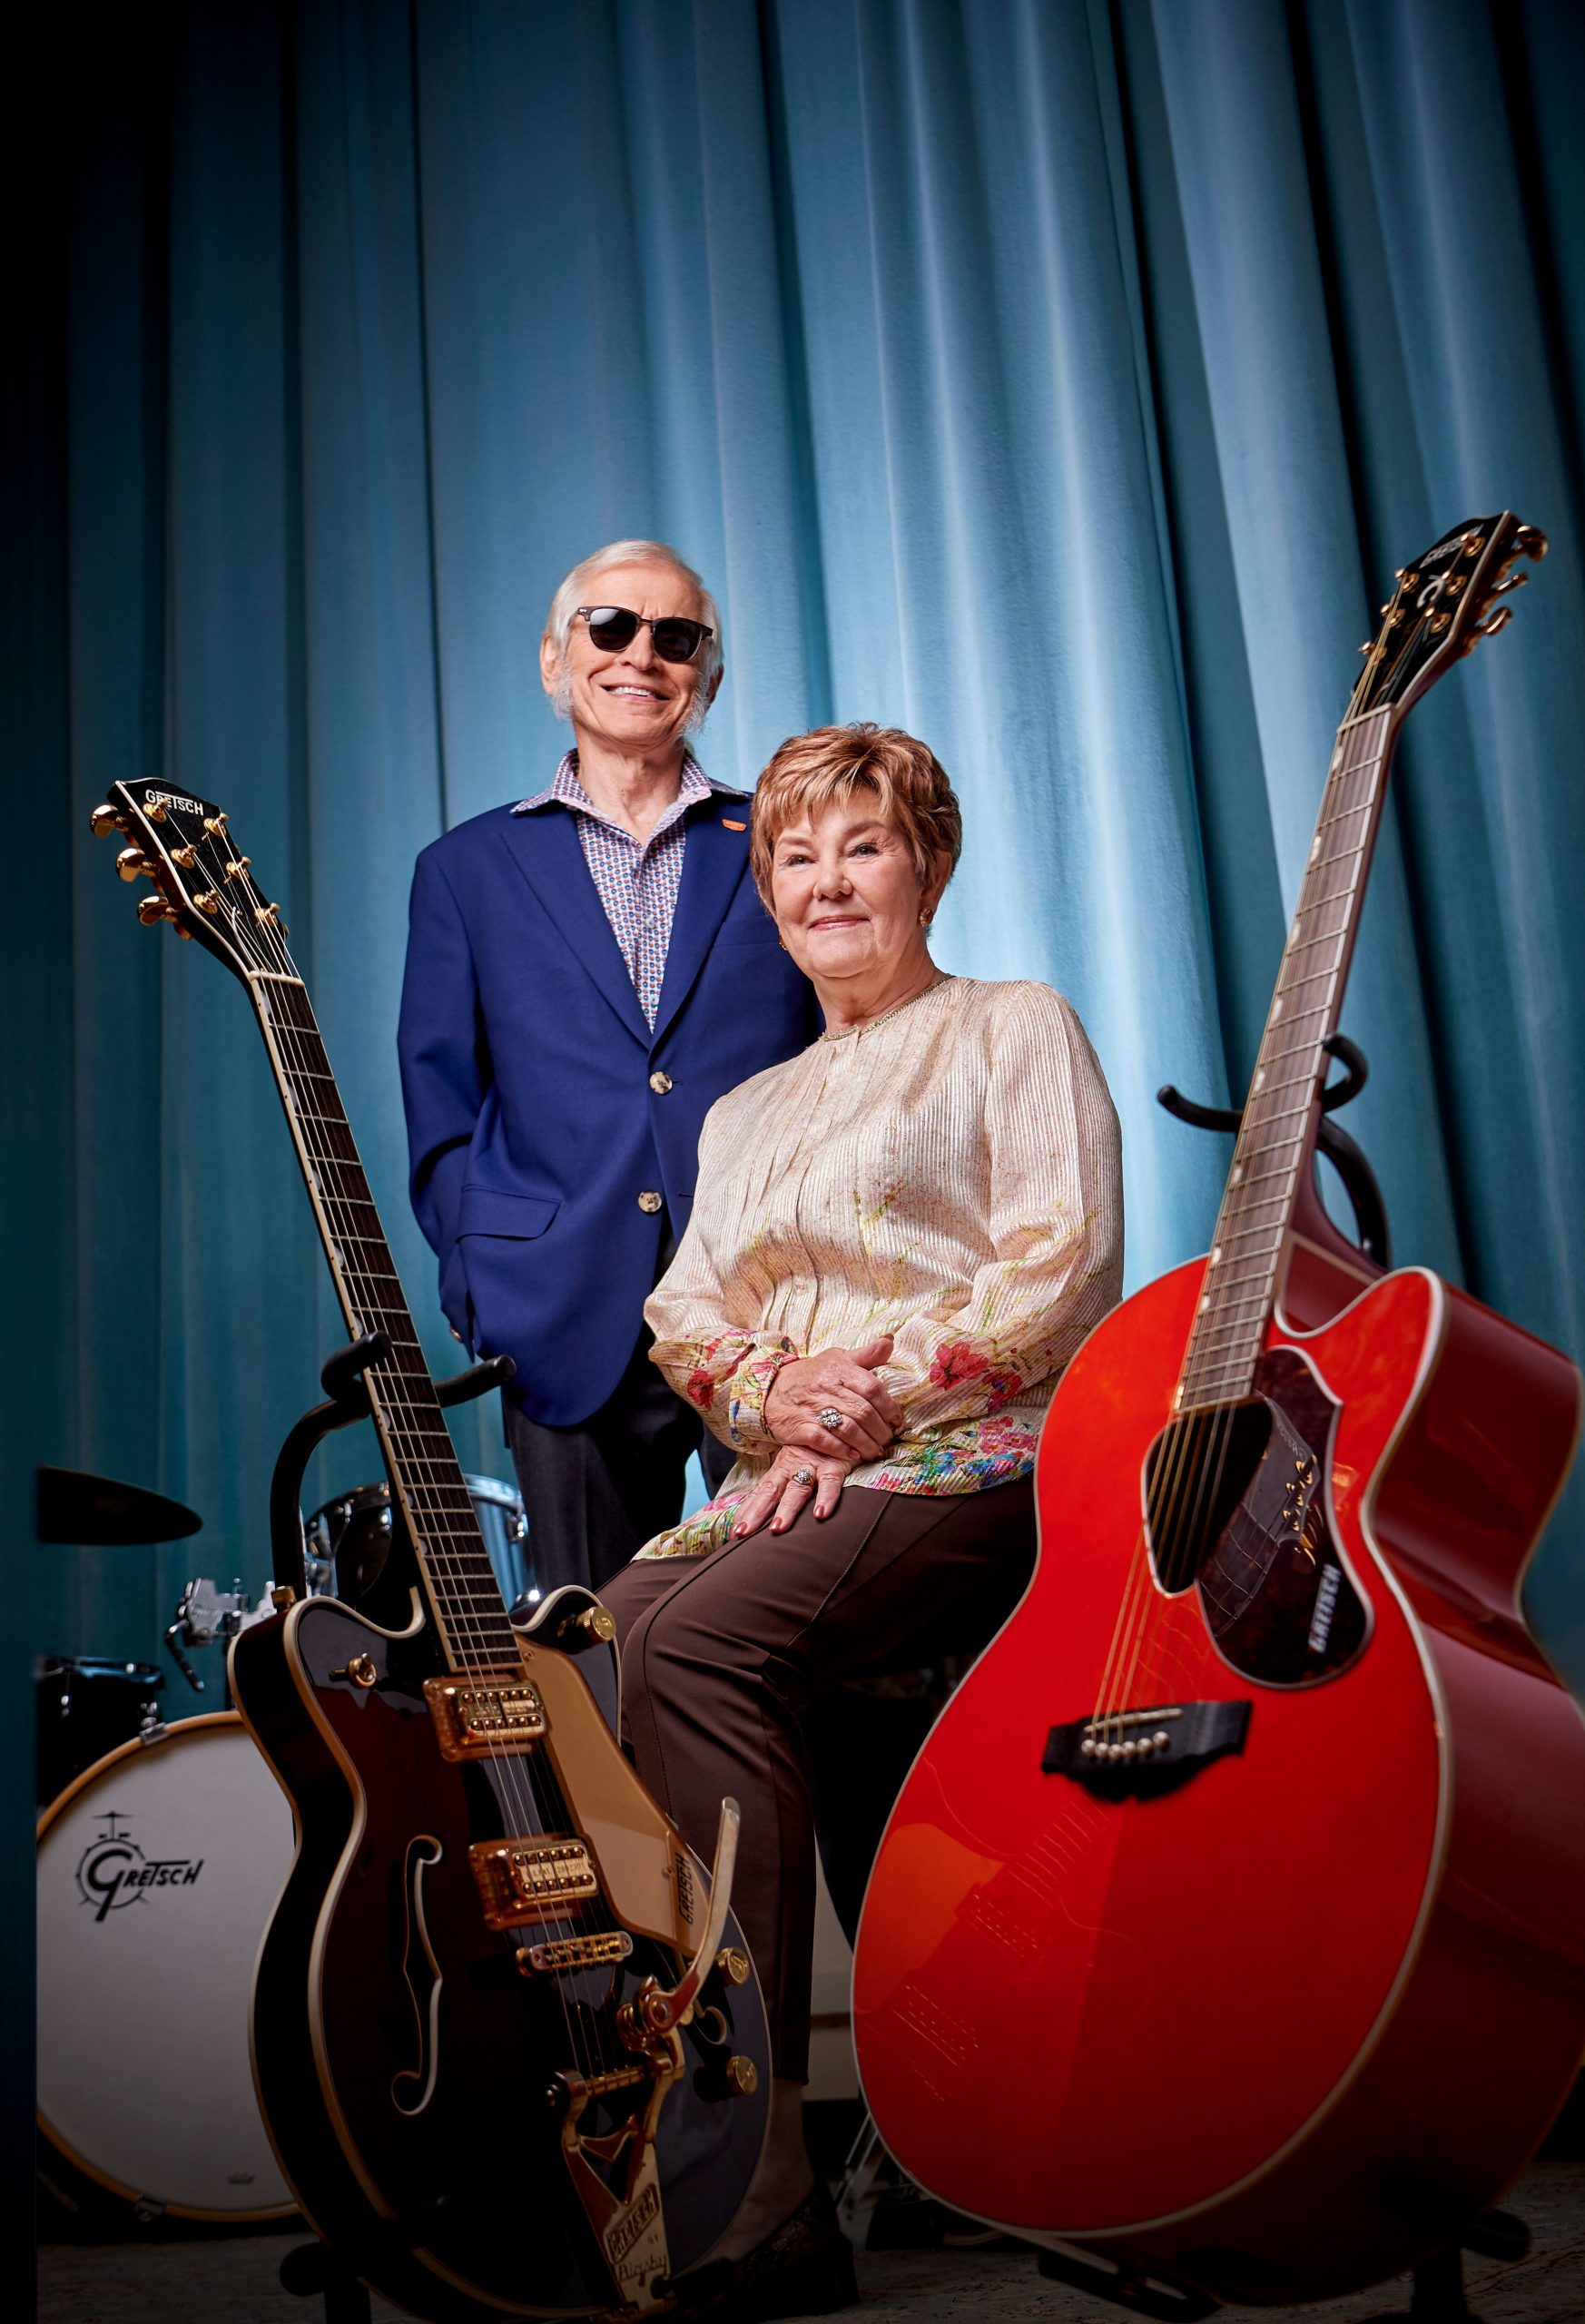 Elmhurst University alumnus Fred Gretsch and wife Dinah Gretsch pose for a photograph with guitars made by their company.